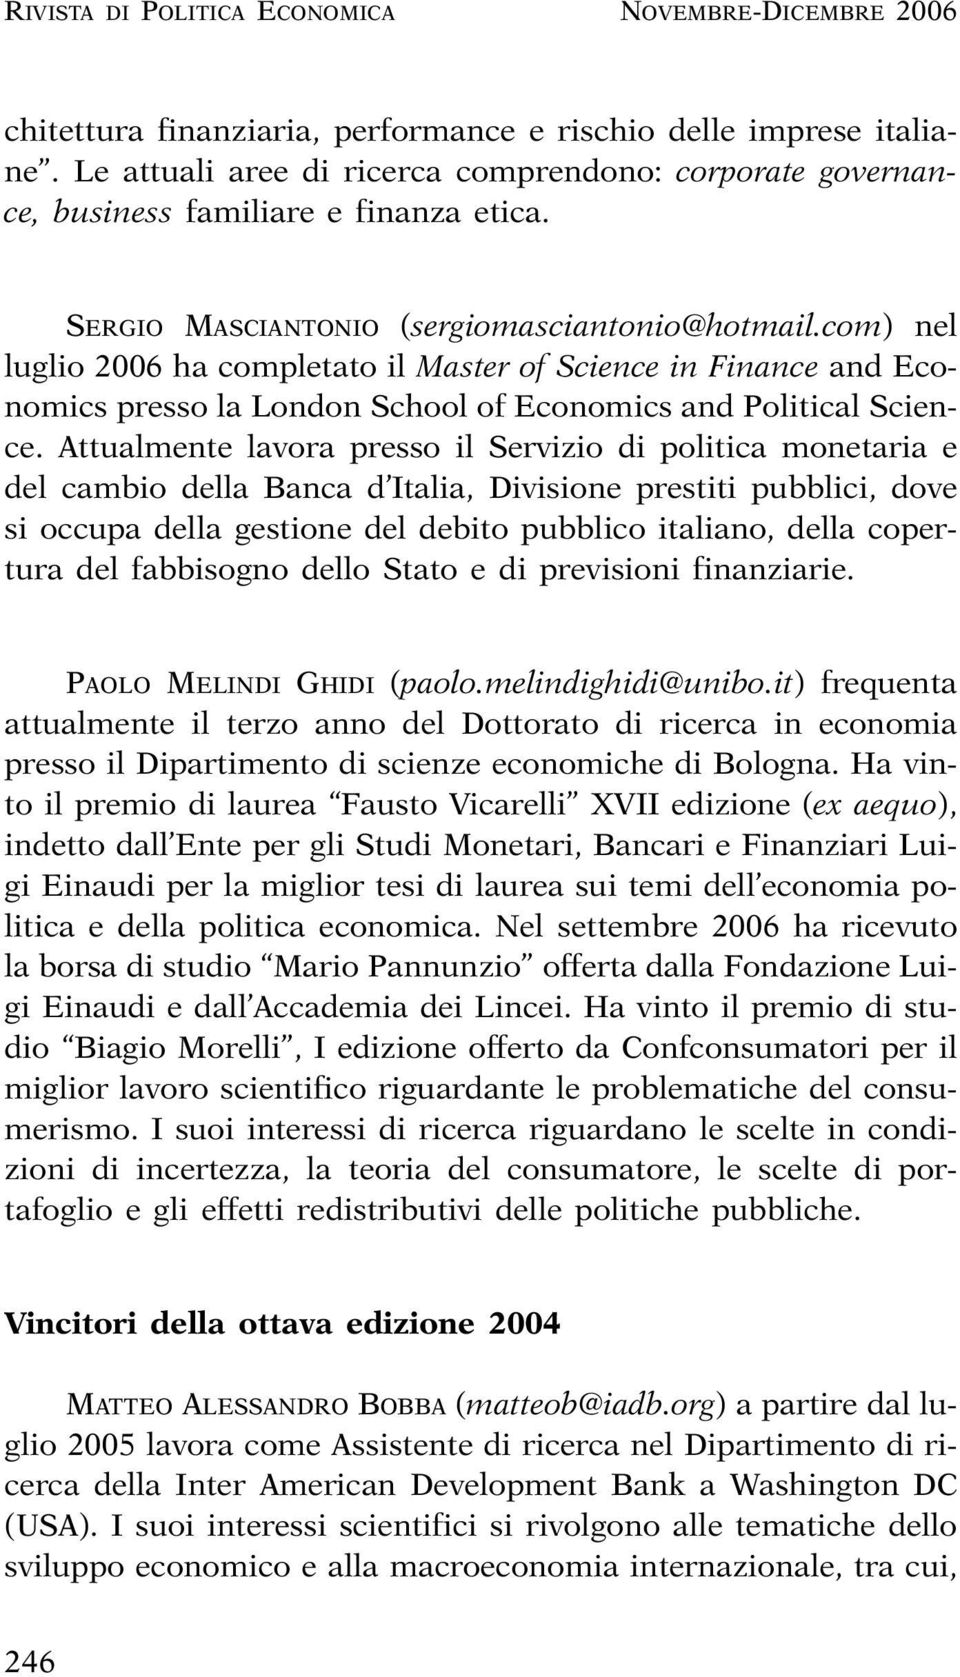 com) nel luglio 2006 ha completato il Master of Science in Finance and Economics presso la London School of Economics and Political Science.